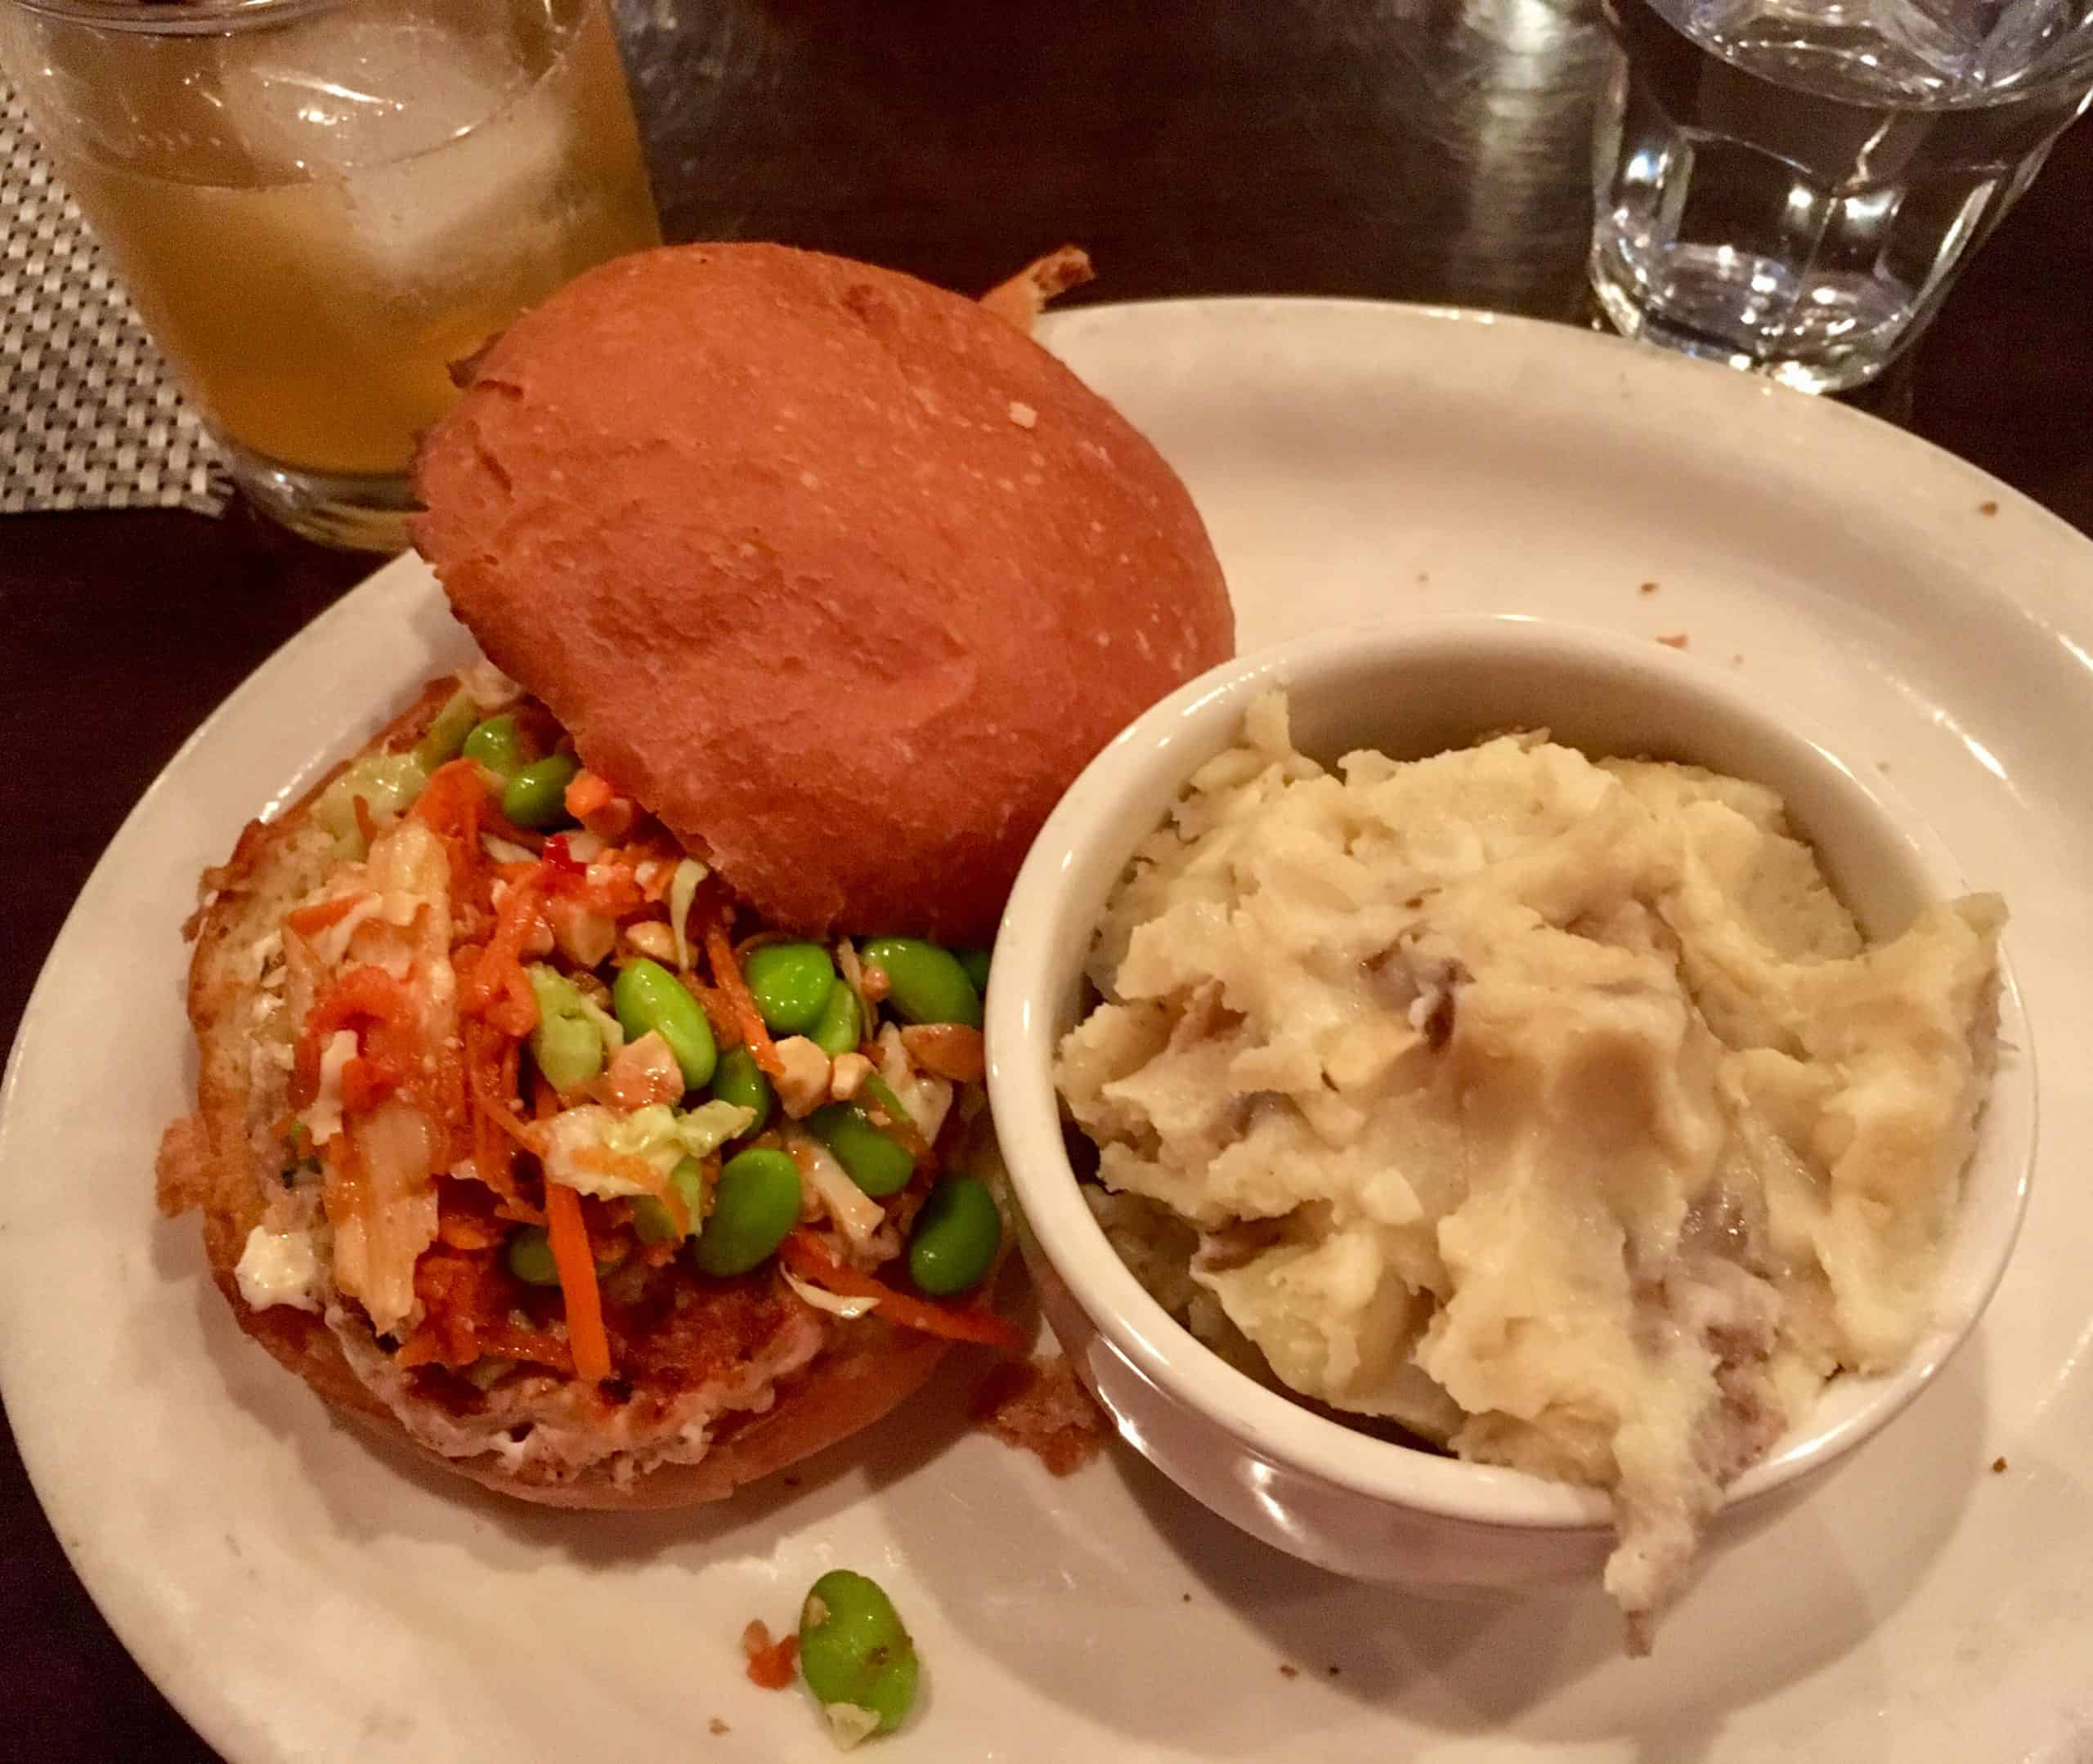 Hutch's Thai Salmon burger pairs perfectly with mashed potatoes